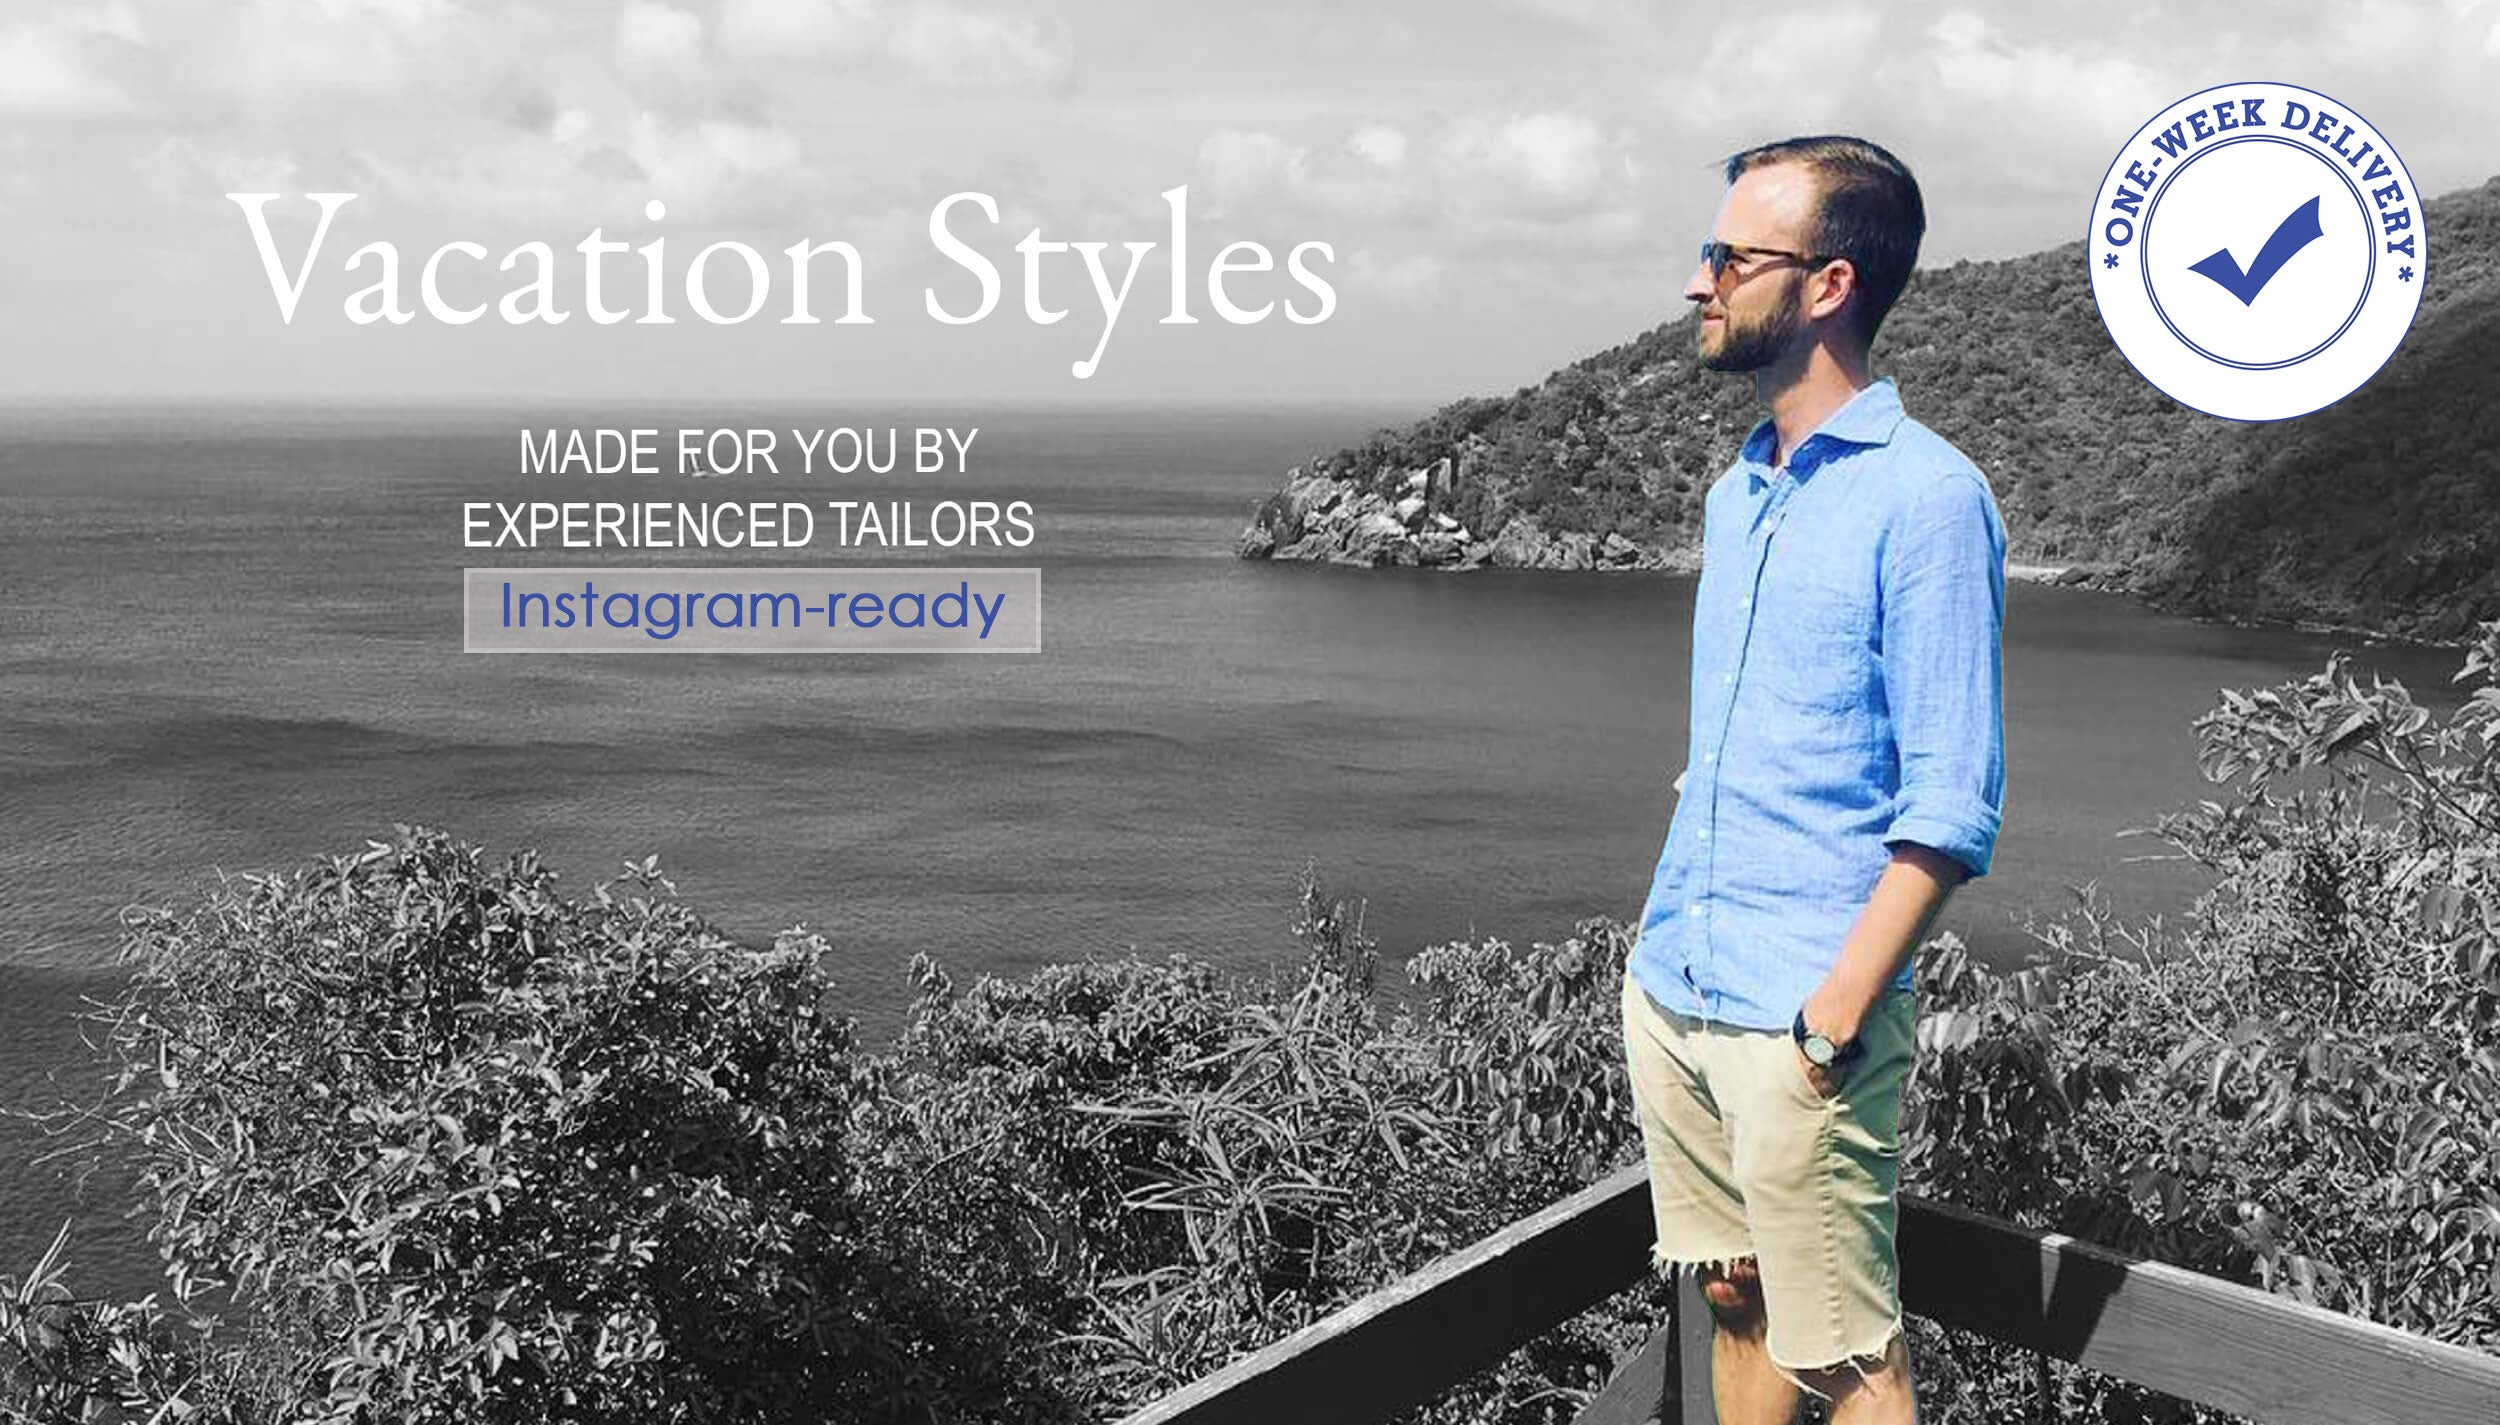 Vacation Styles: Made for you by experienced tailors